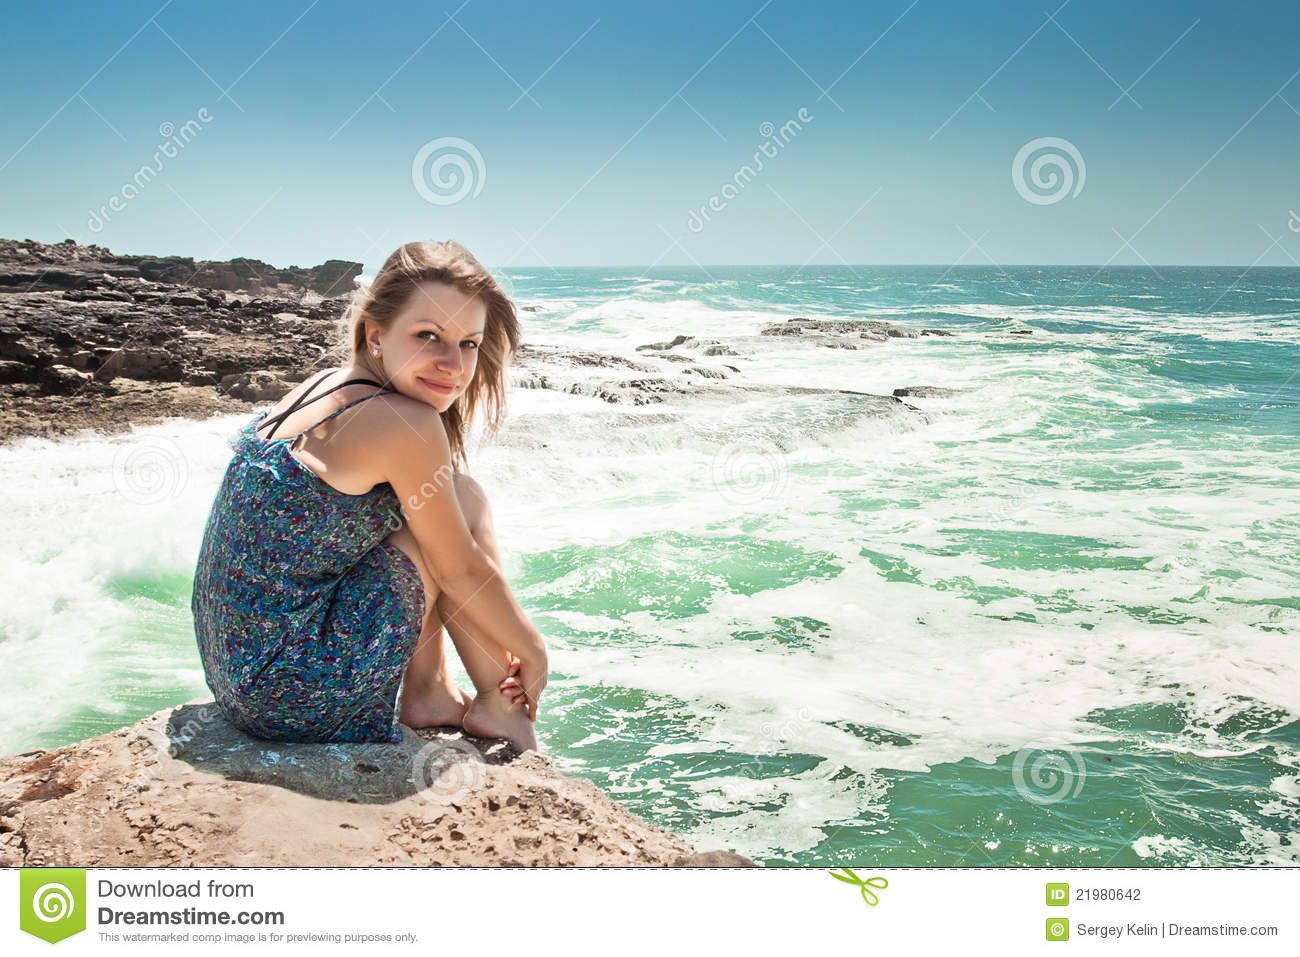 Girl sitting on rock woman with